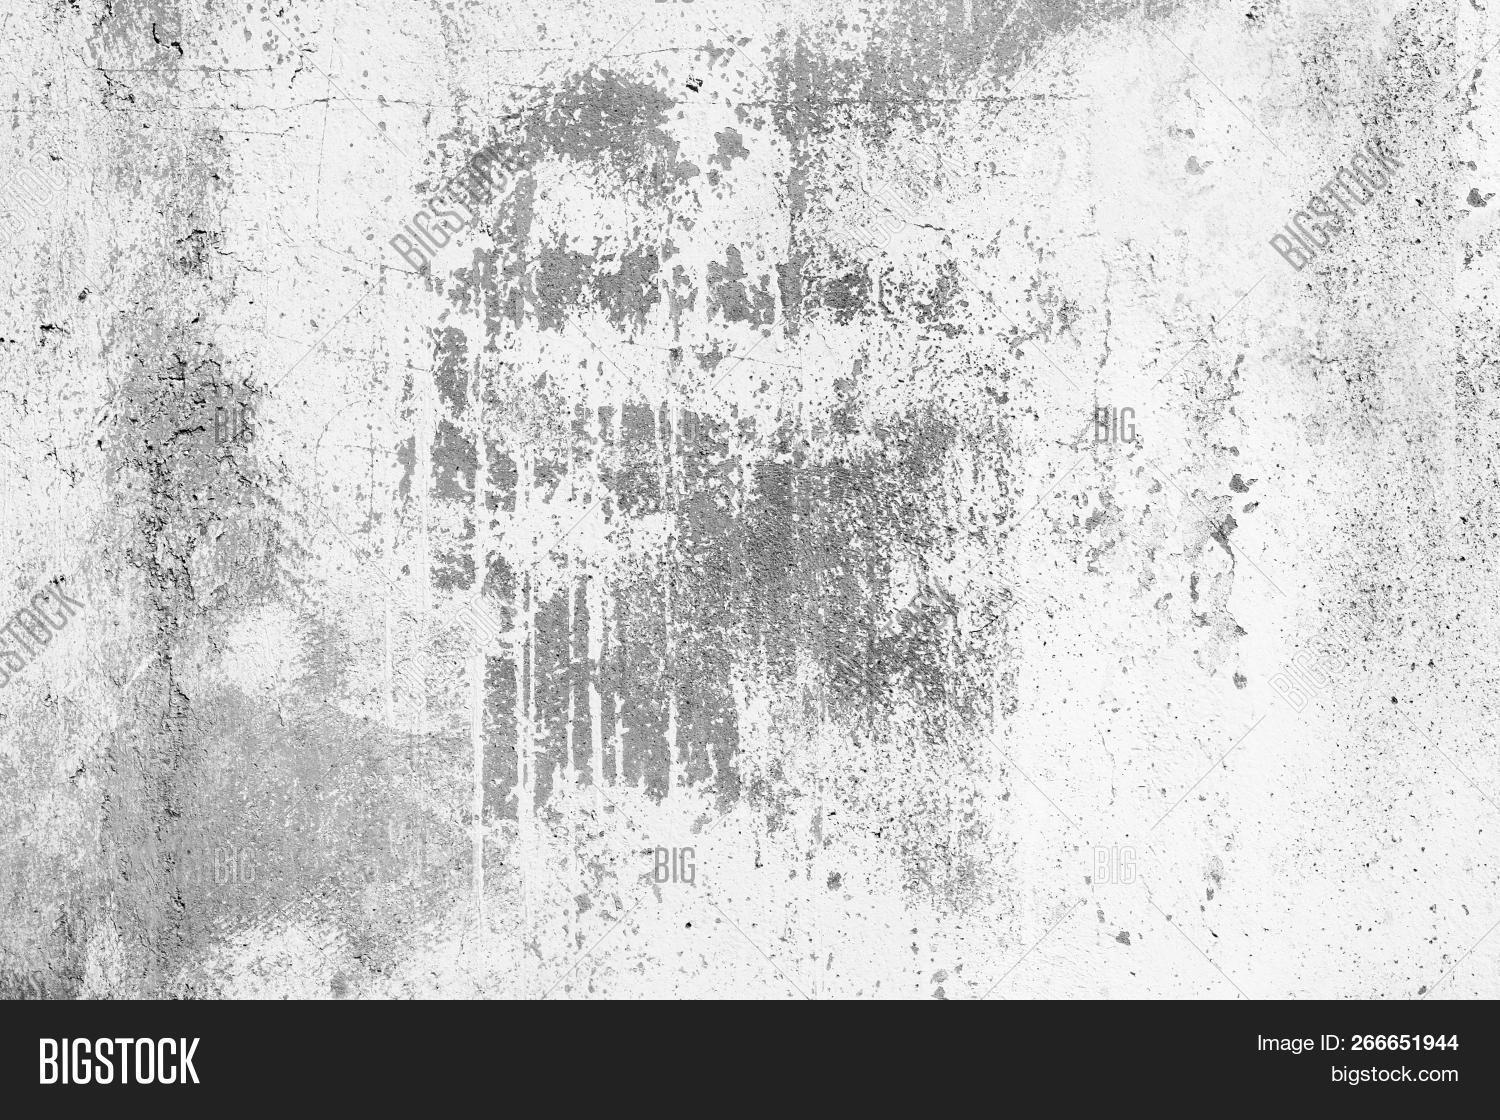 abstract,art,background,black,concrete,crack,dark,design,dirty,effect,gray,grey,grunge,grungy,old,paint,pattern,retro,rough,stone,surface,texture,textured,vintage,wall,white